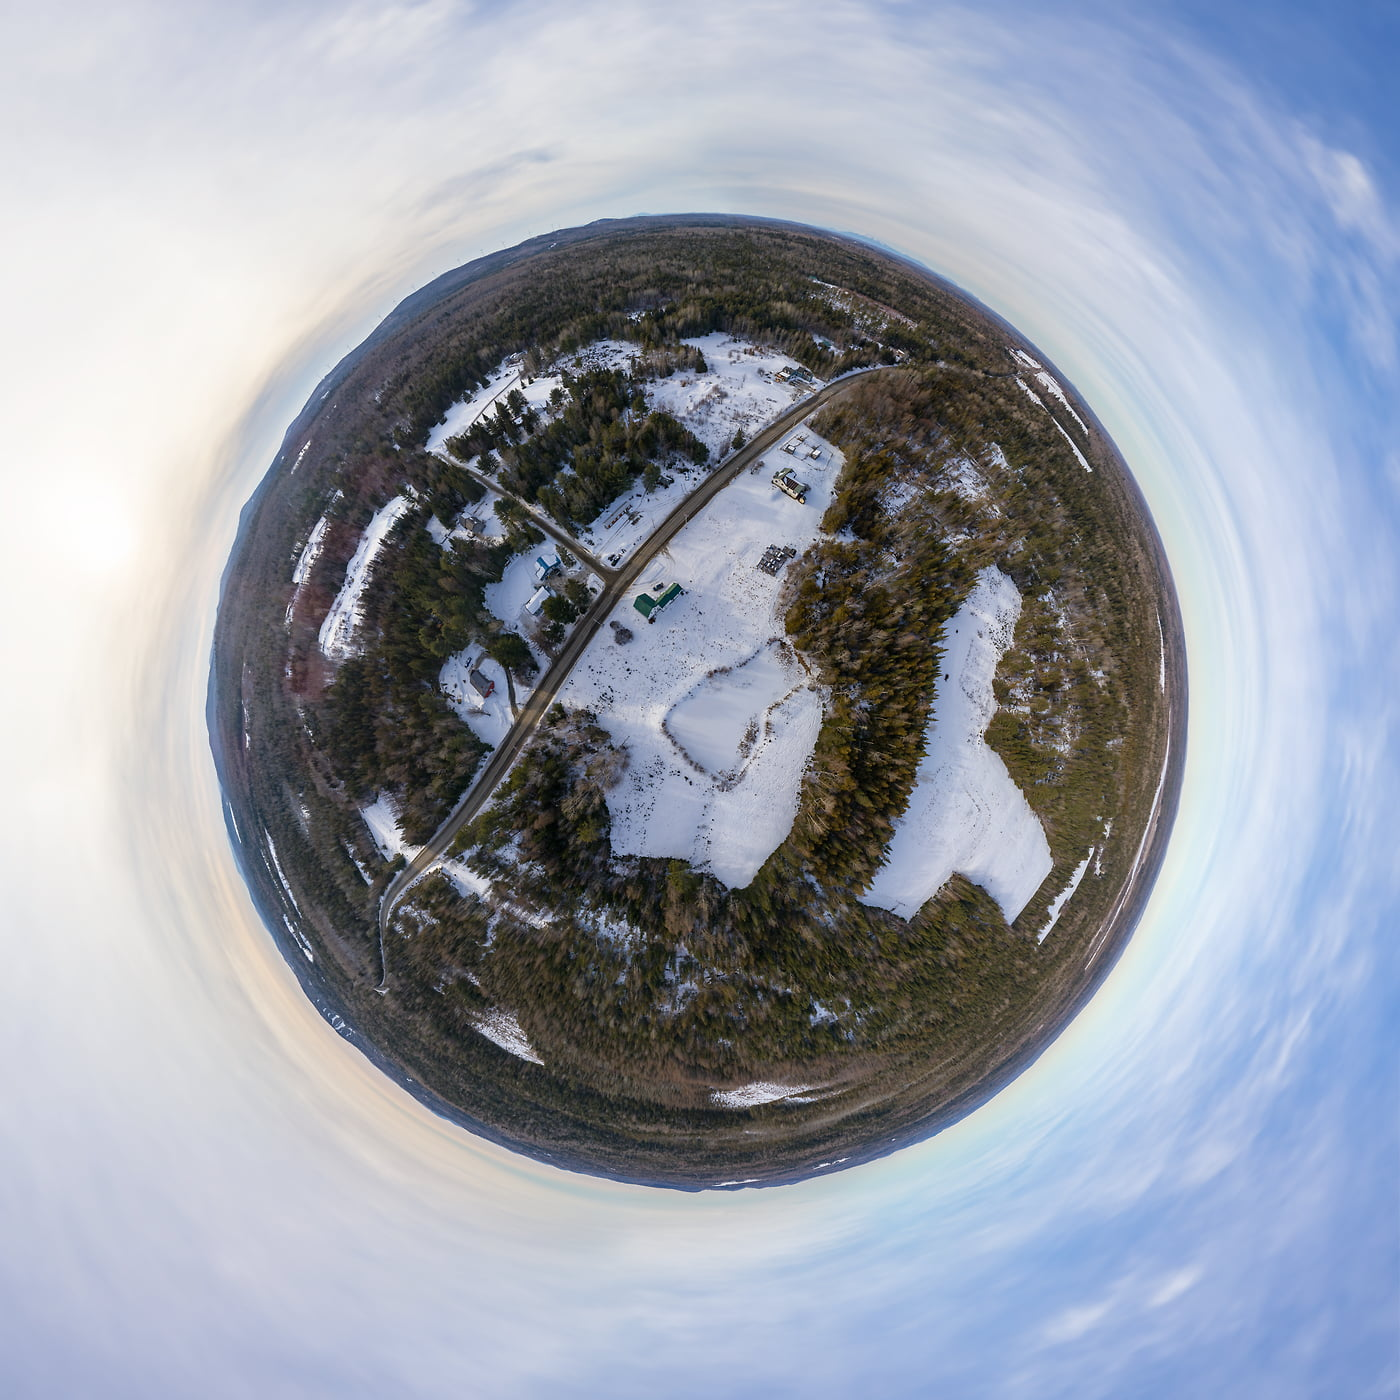 431 megapixels! A very high resolution, large-format VAST photo of Lee, Maine; fine art aerial 360-degree panorama photograph created by Aaron Priest in New England